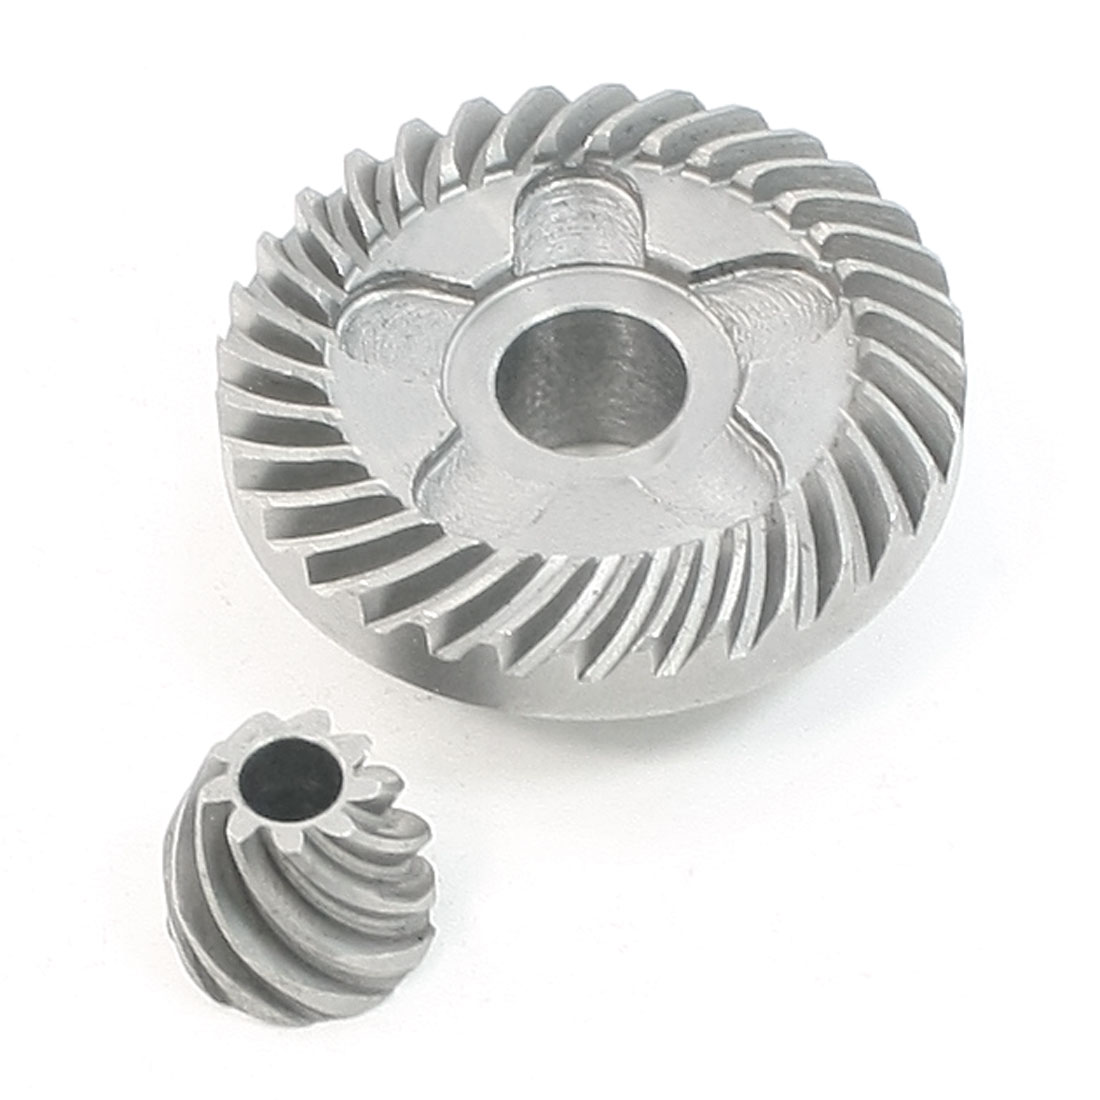 Replacement Part Spiral Bevel Gear Pinion Set for Bosch 100mm Angle Grinder